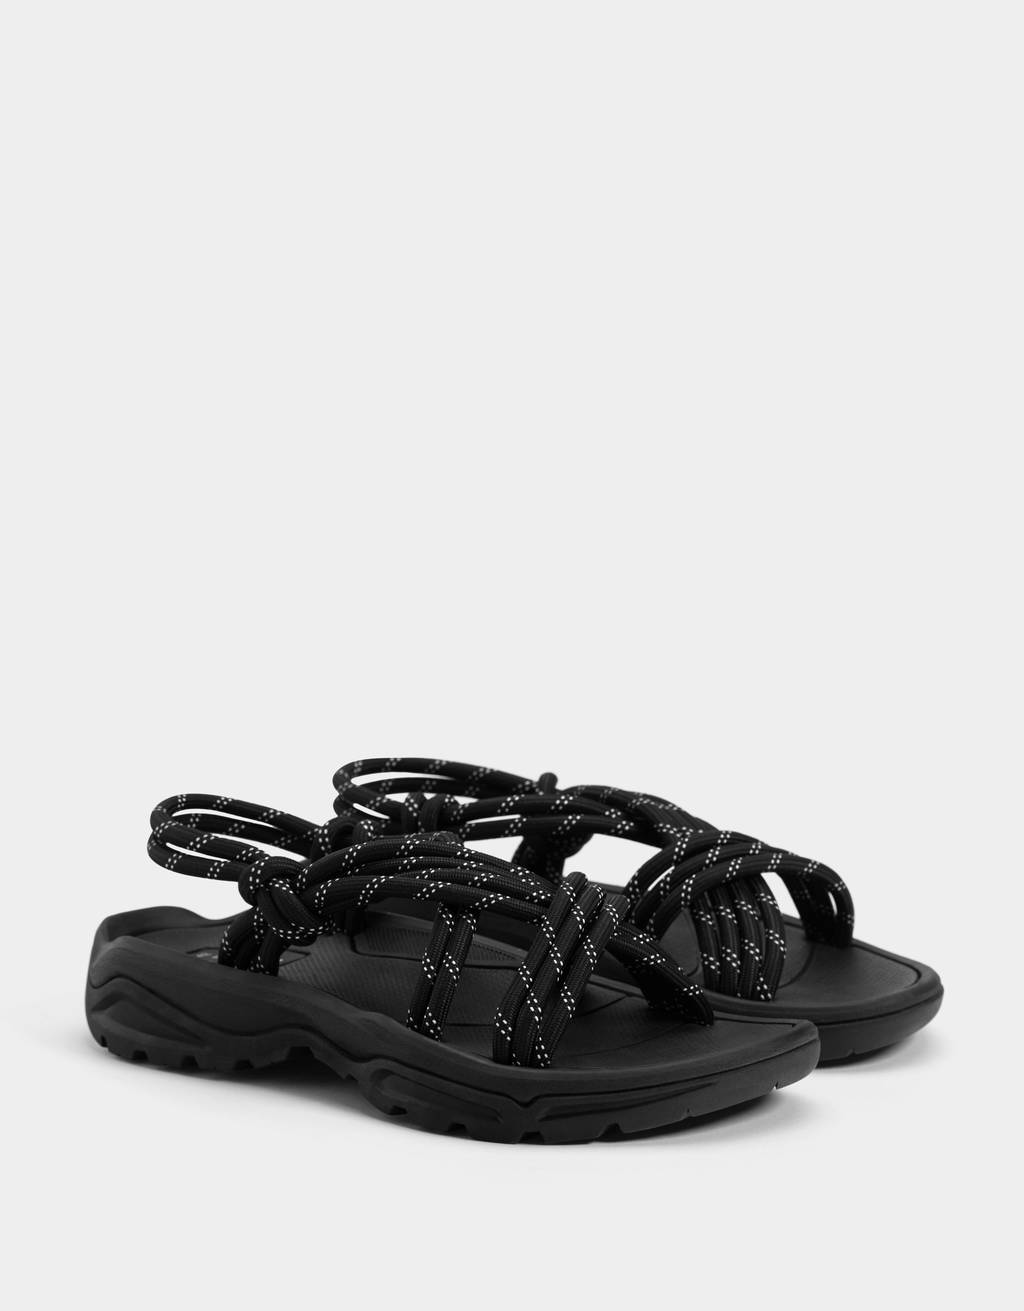 Men's technical rope sandals